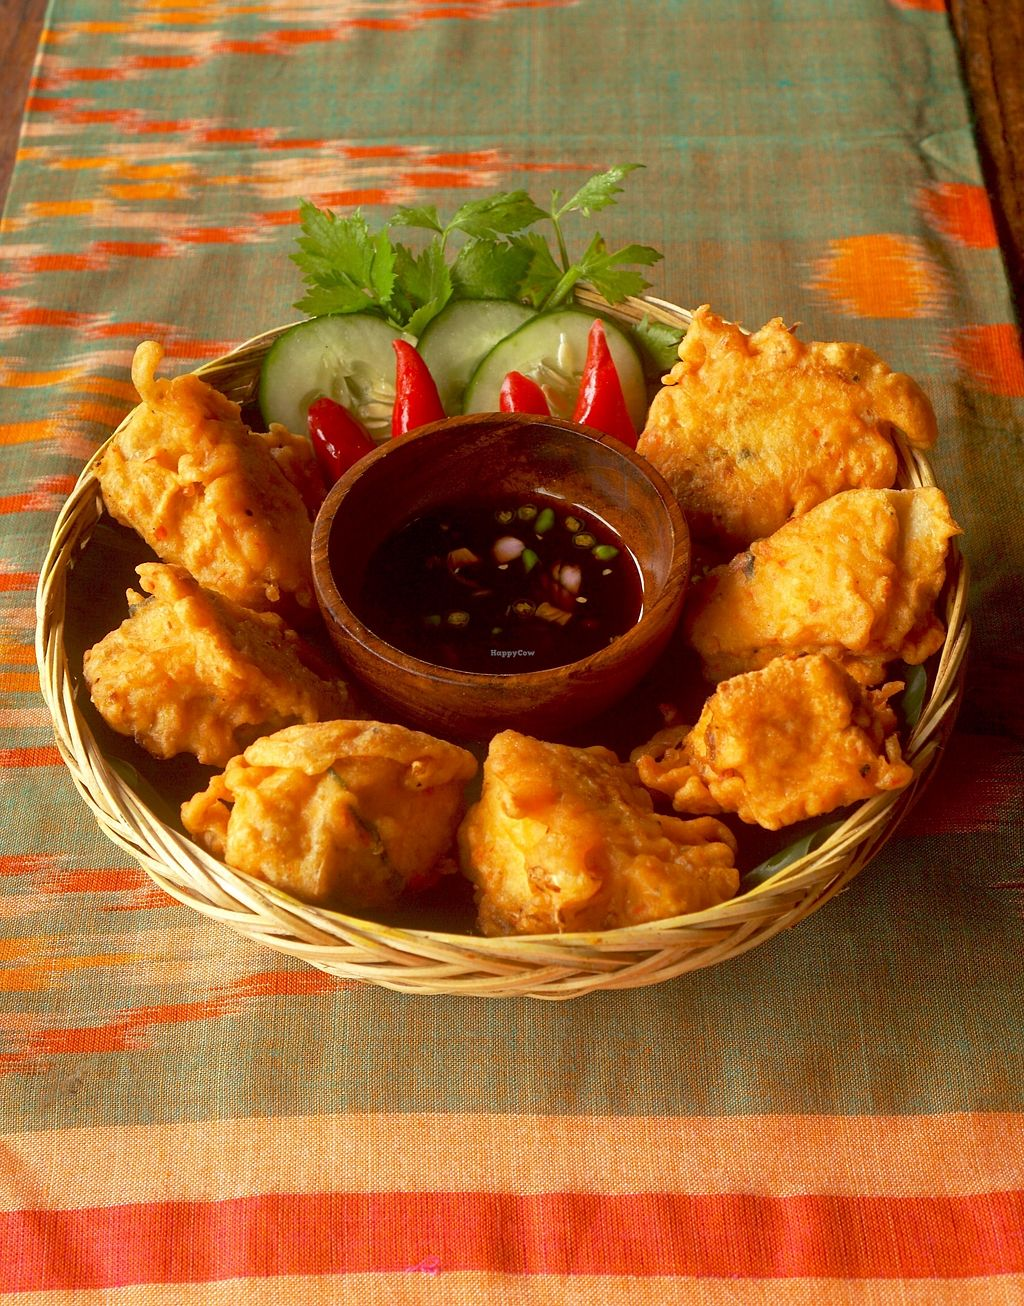 """Photo of Sarinbuana Eco Lodge Restaurant  by <a href=""""/members/profile/baliecolodge"""">baliecolodge</a> <br/>Tofu Isi - Tofu stuffed with local veggies with Tamari dipping sauce <br/> November 4, 2017  - <a href='/contact/abuse/image/93928/321586'>Report</a>"""